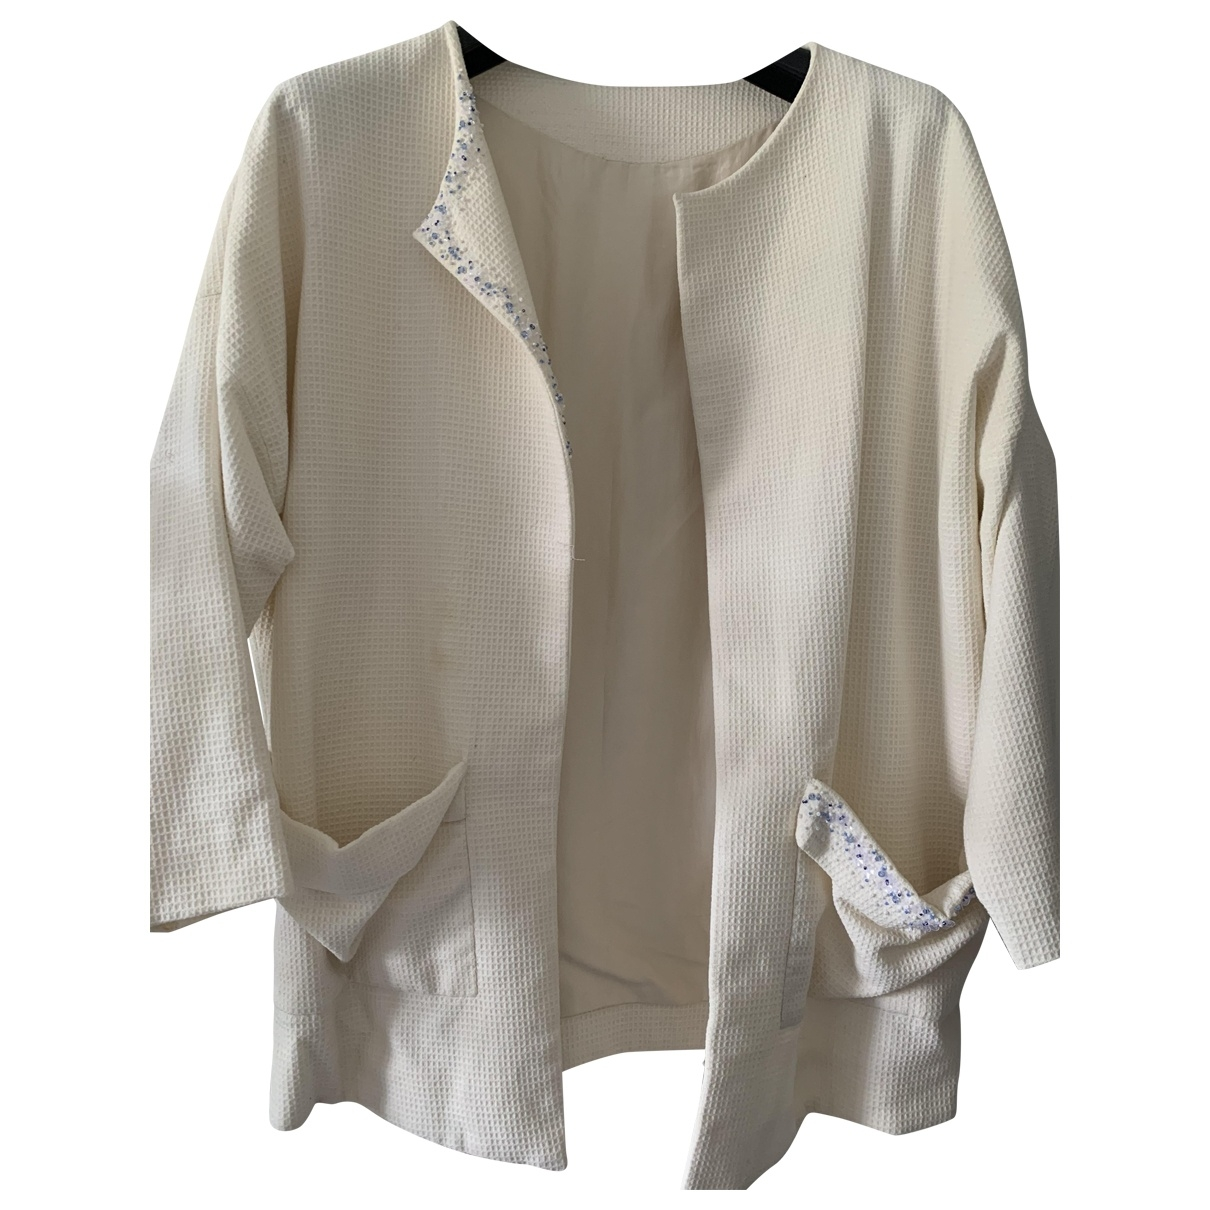 Non Signé / Unsigned \N Beige Cotton jacket for Women One Size FR